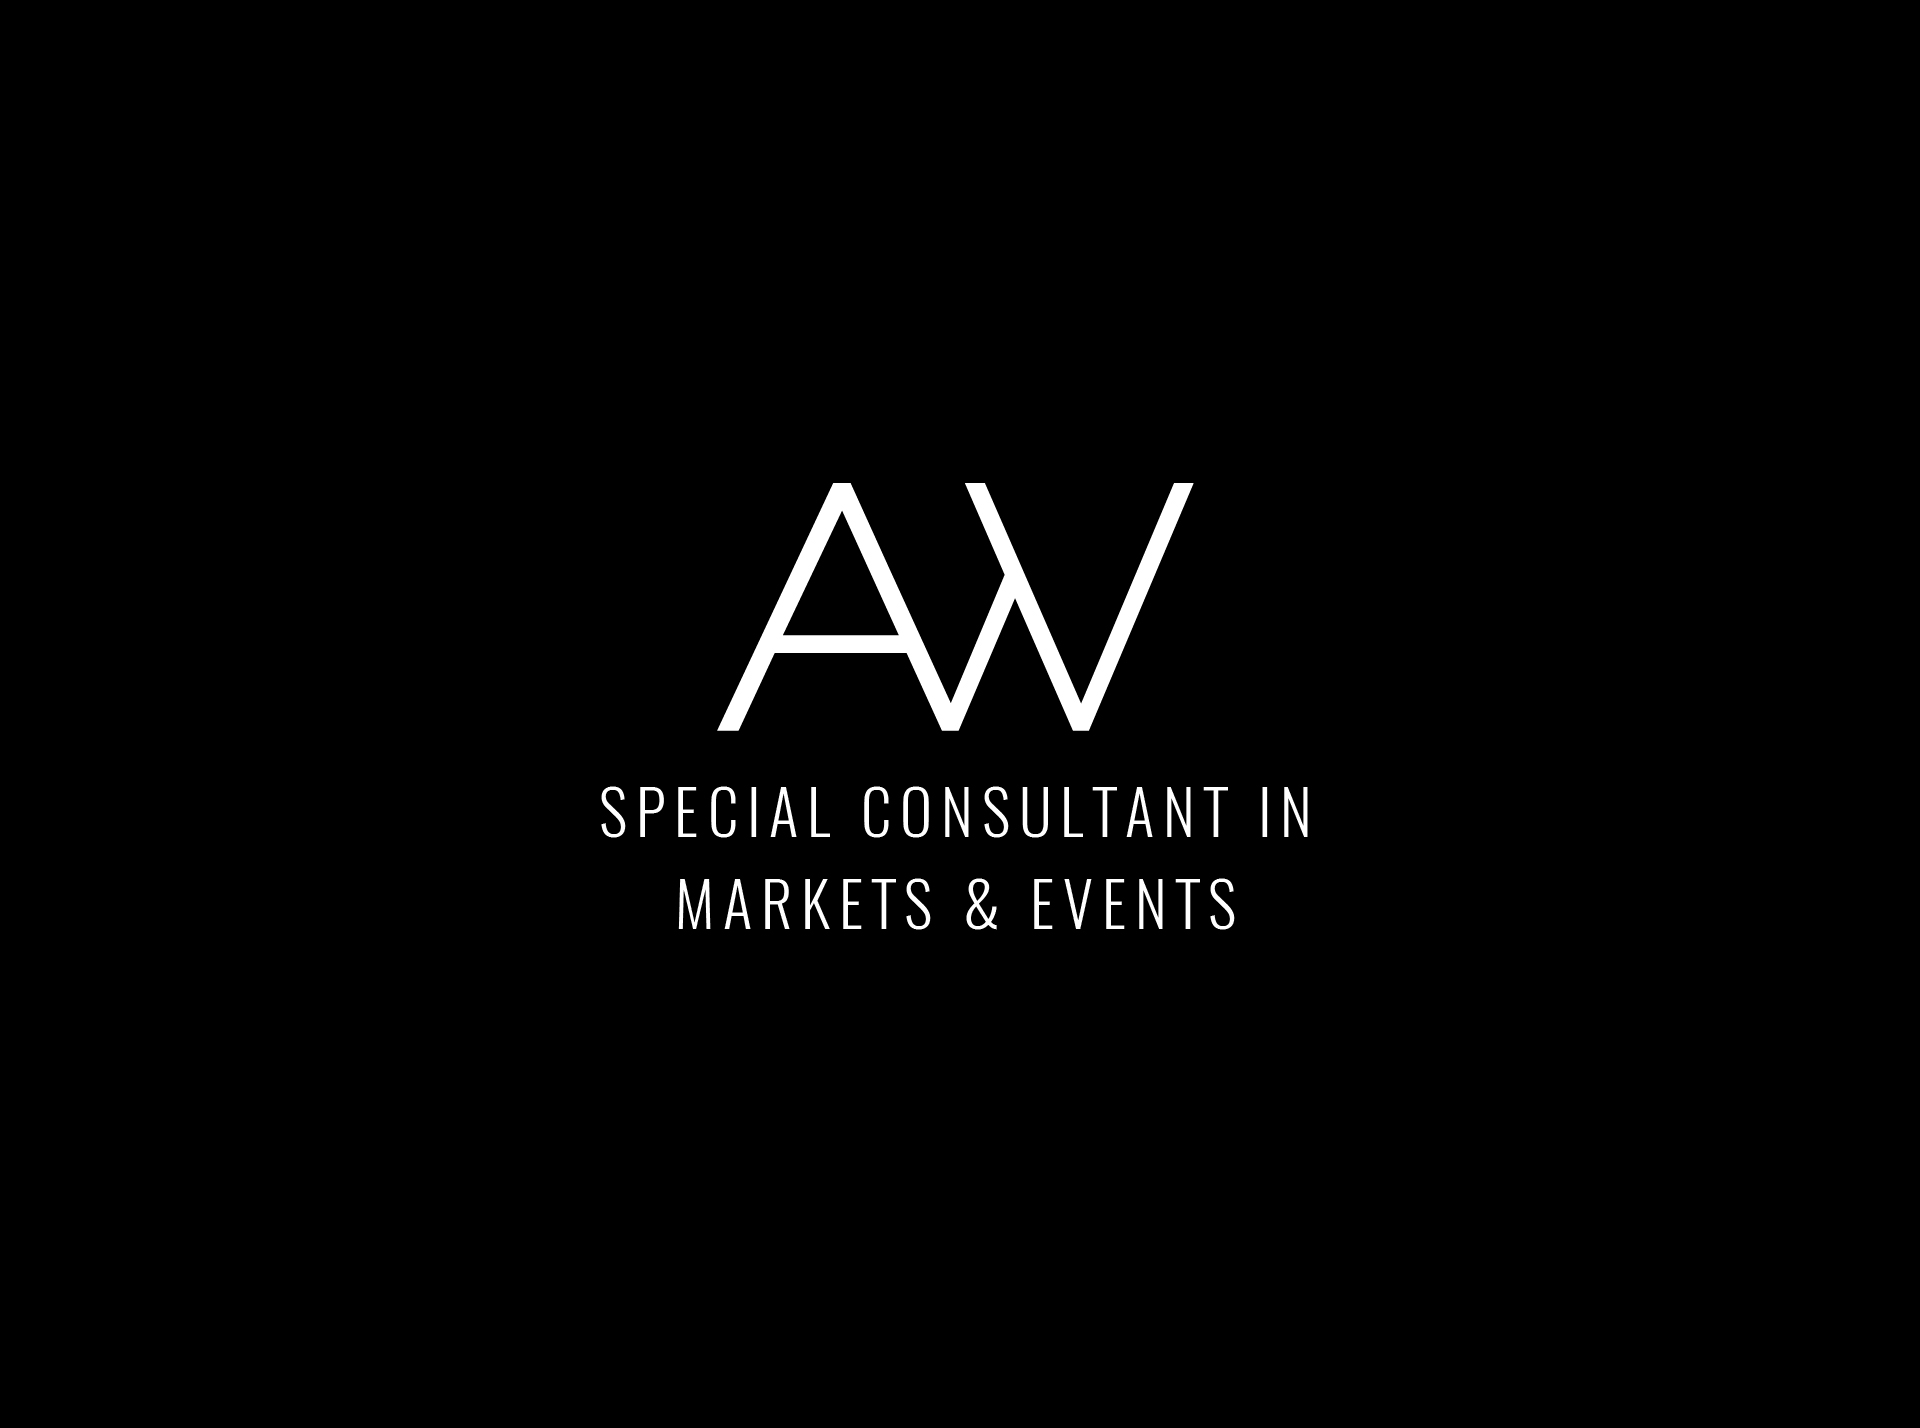 AW Special Consultant in Markets and Events